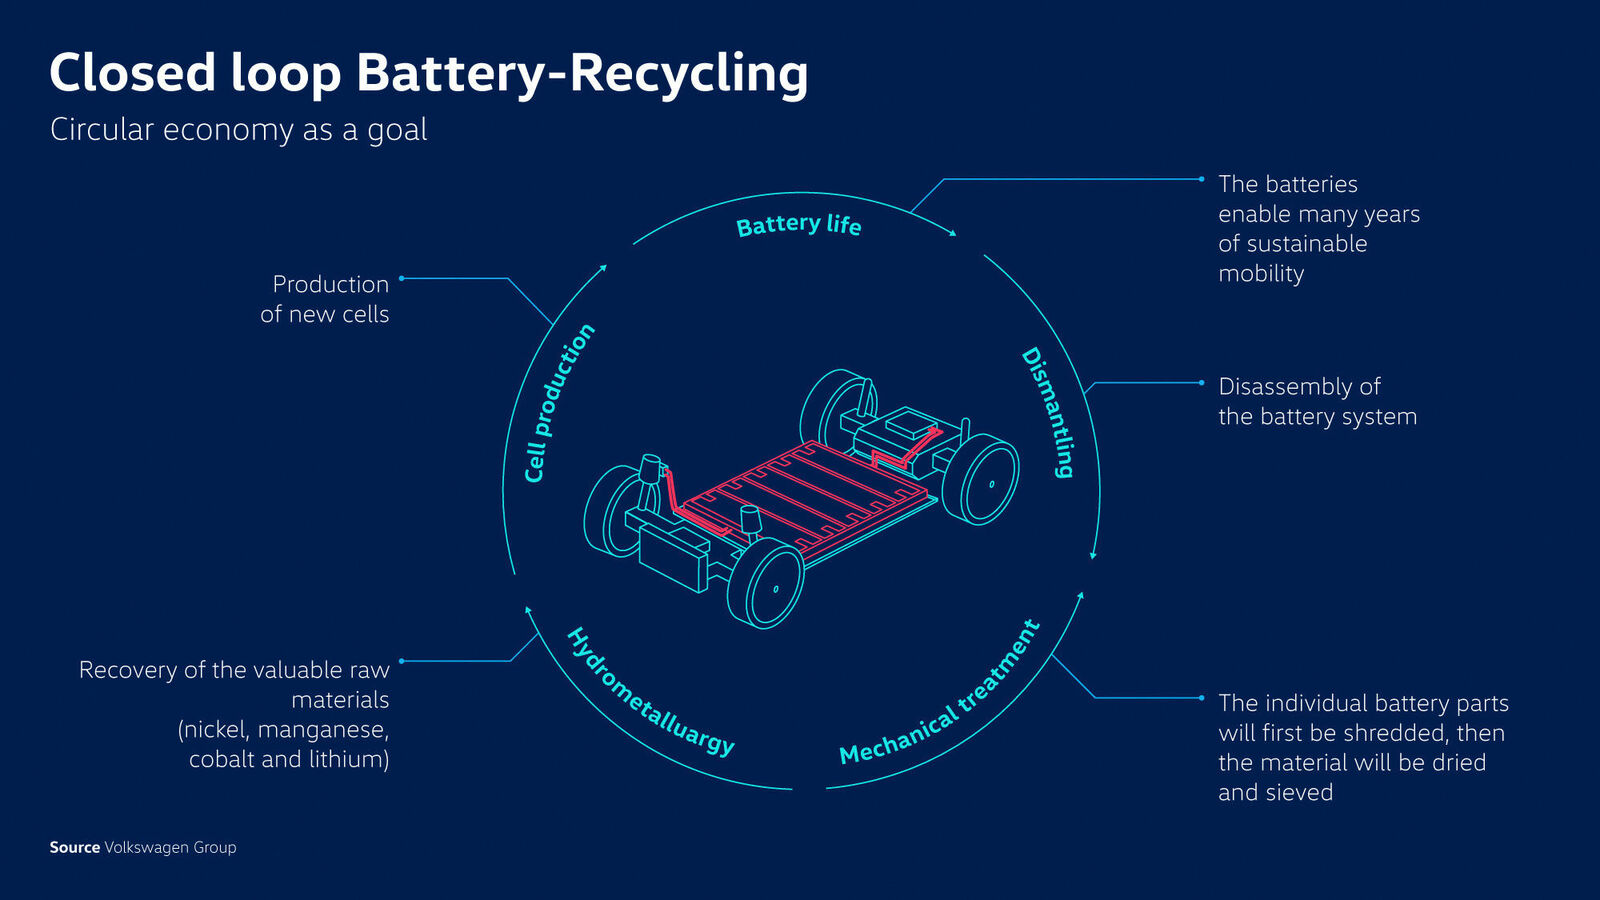 Closed loop Battery-Recycling